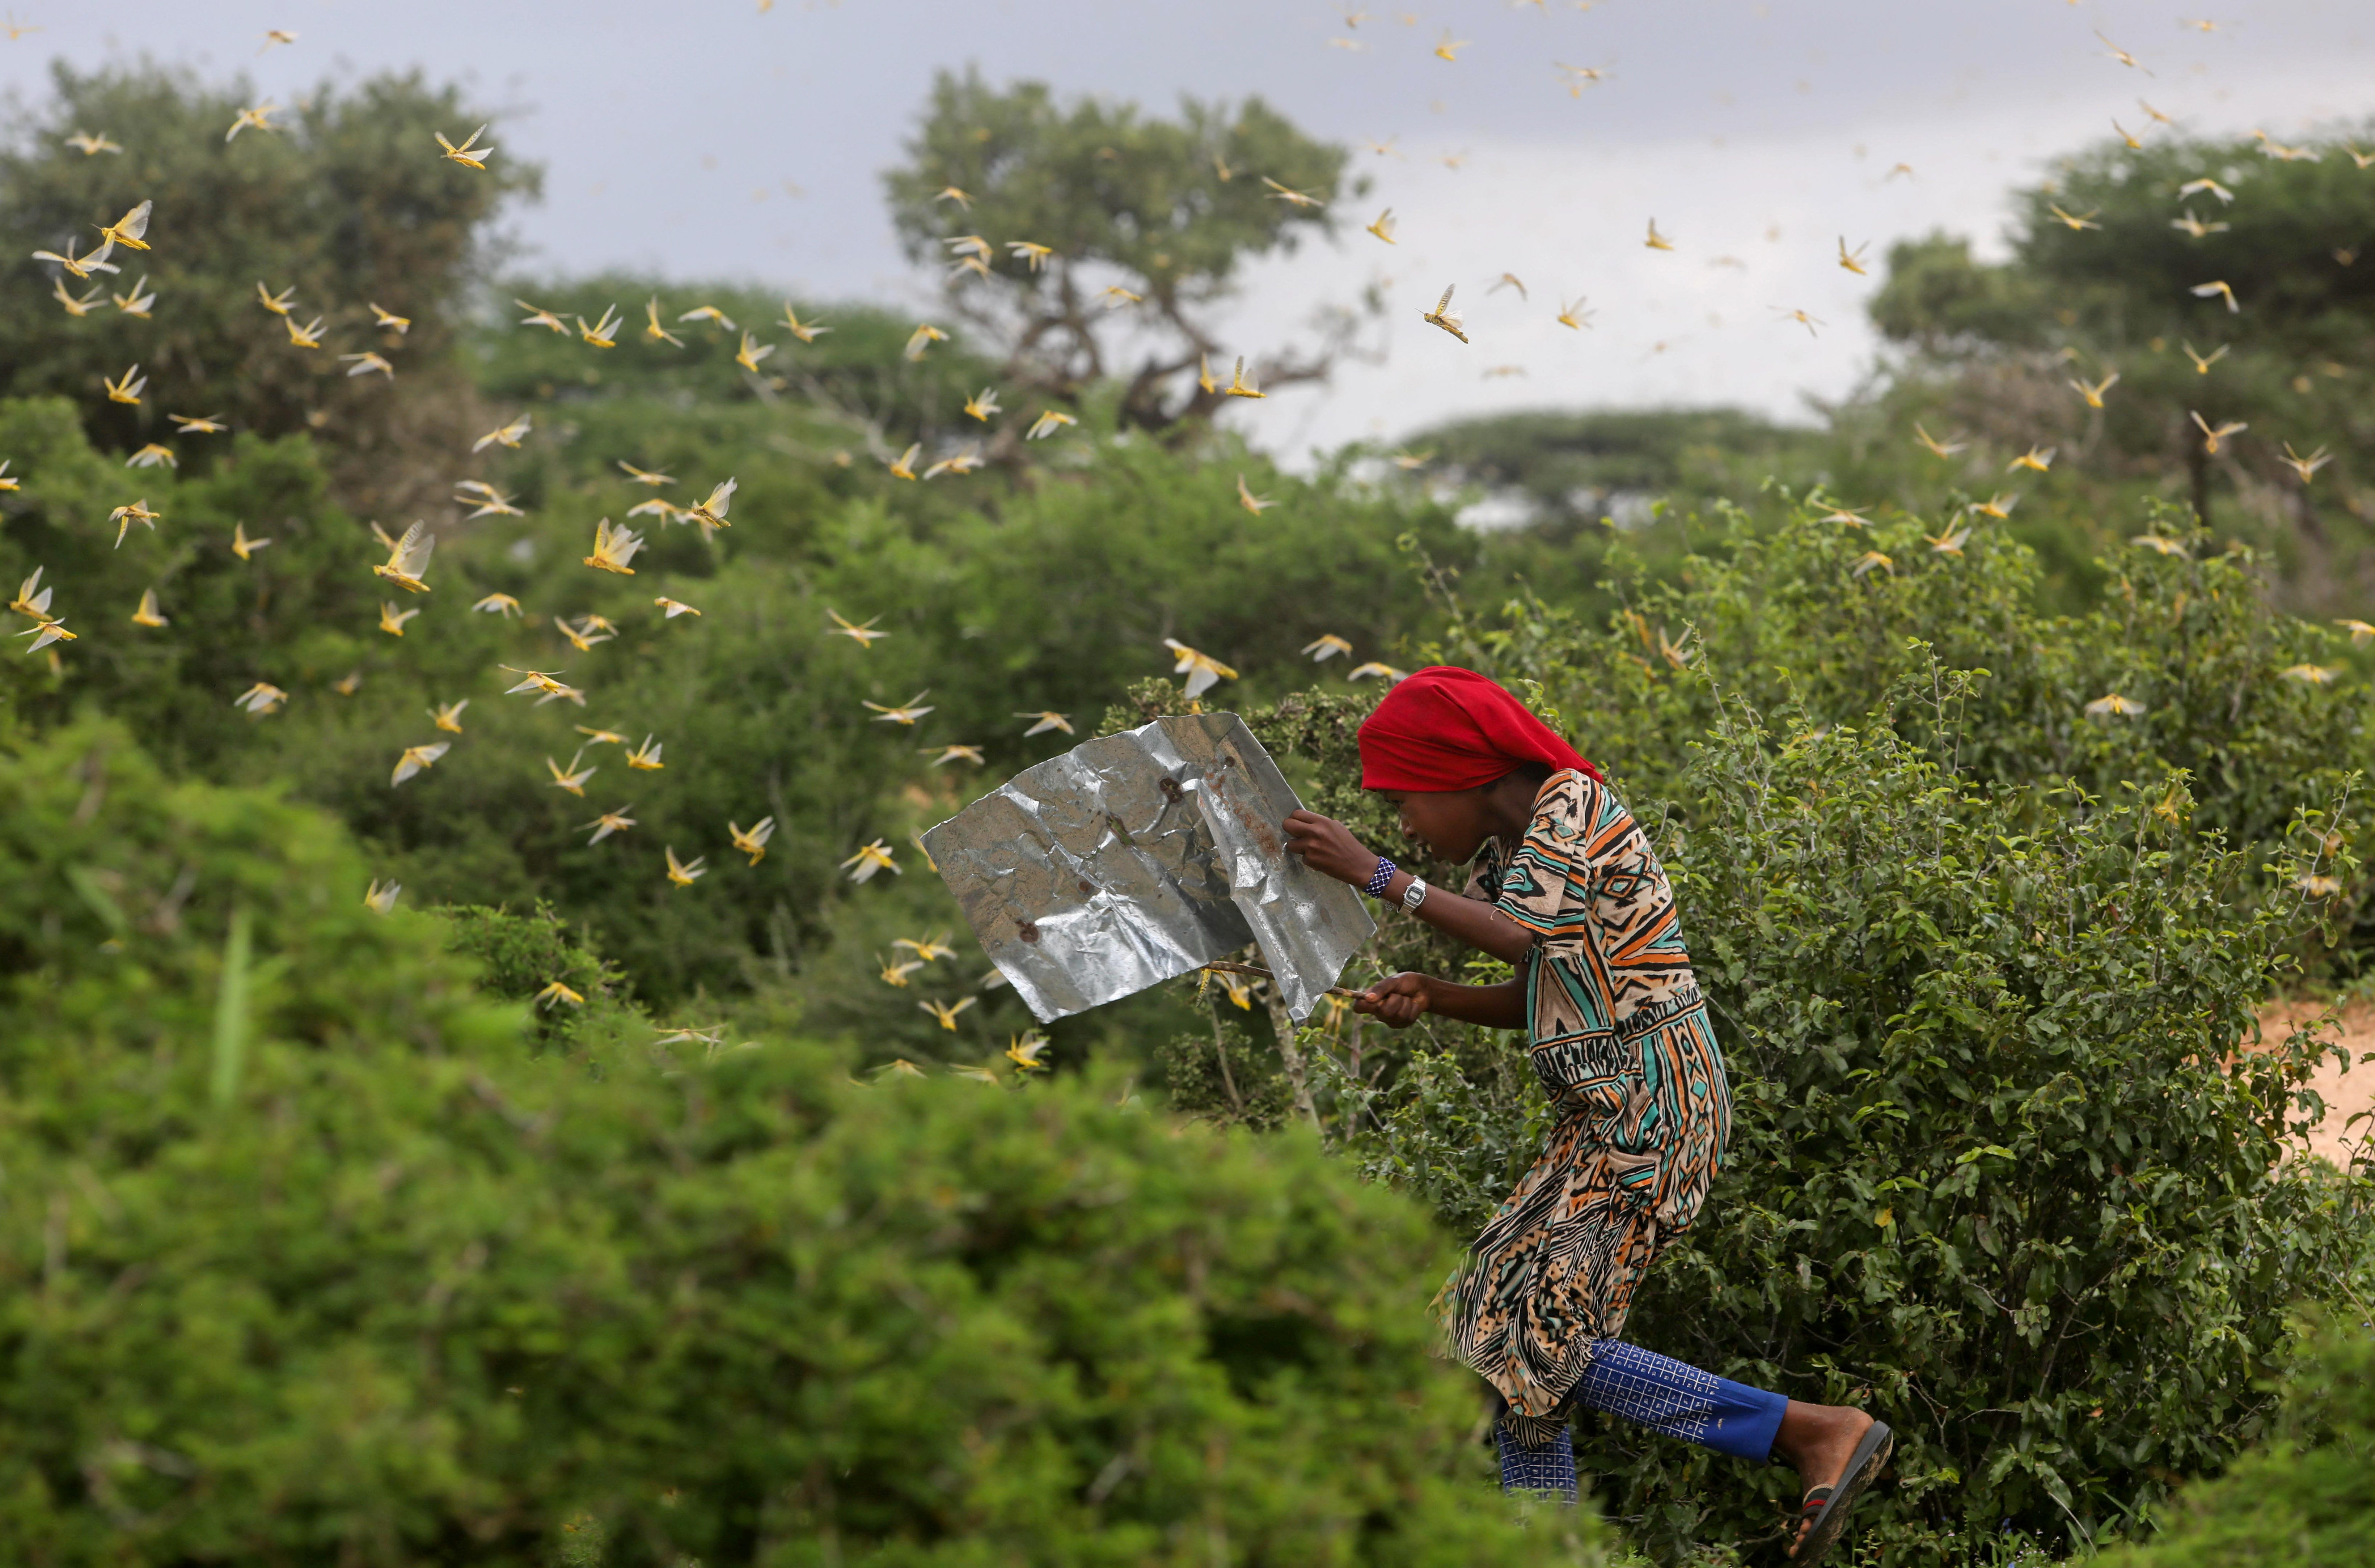 A Somali girl attempts to fend-off a swarm of desert locusts in a grazing land on the outskirt of Daynile district of Mogadishu, Somalia November 13, 2020 REUTERS/Feisal Omar - RC2K2K9RK0XT